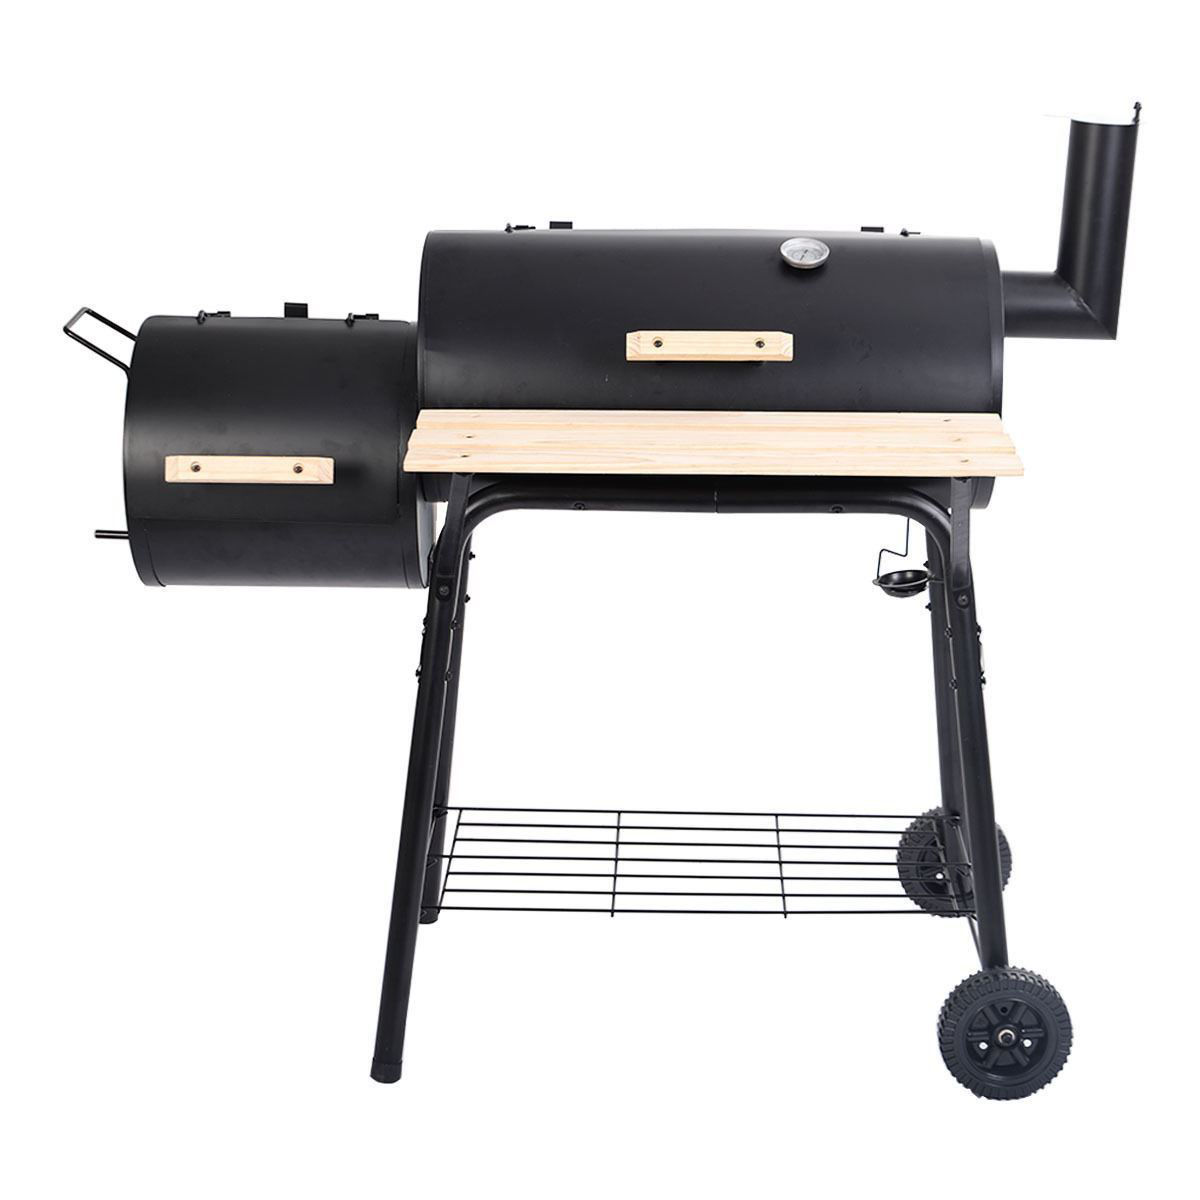 Picture of Outdoor BBQ Grill Charcoal Barbecue Pit Cooker Smoker